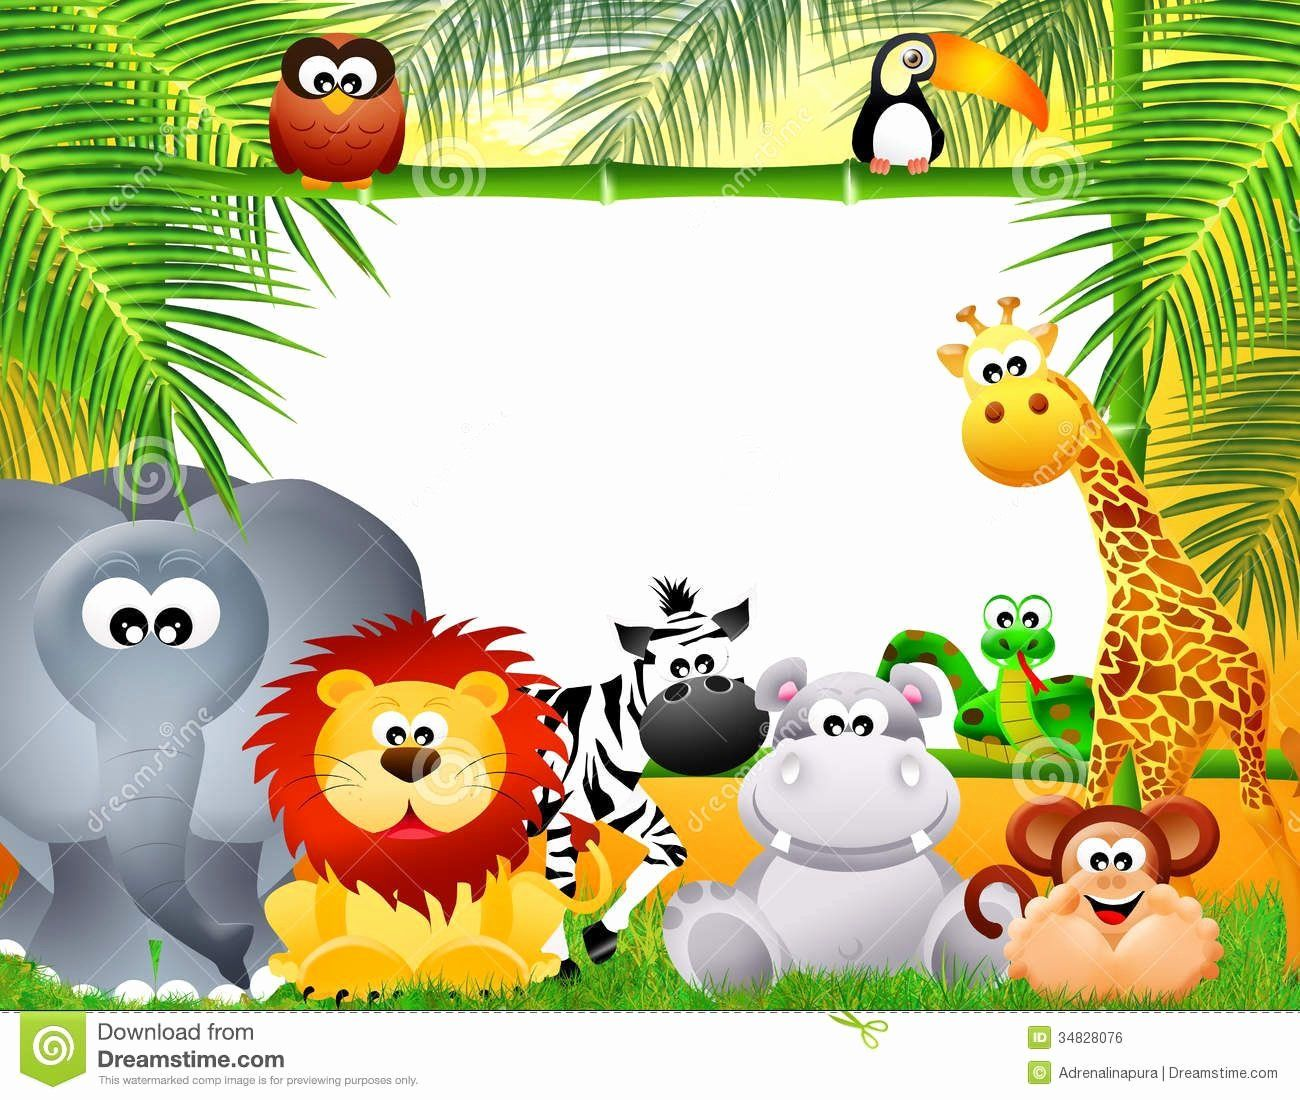 Printables Zoo Animals Unique Zoo Animals Cartoon Royalty Free Stock Image Image In 2020 Zoo Animal Coloring Pages Zoo Animals Cartoon Animals